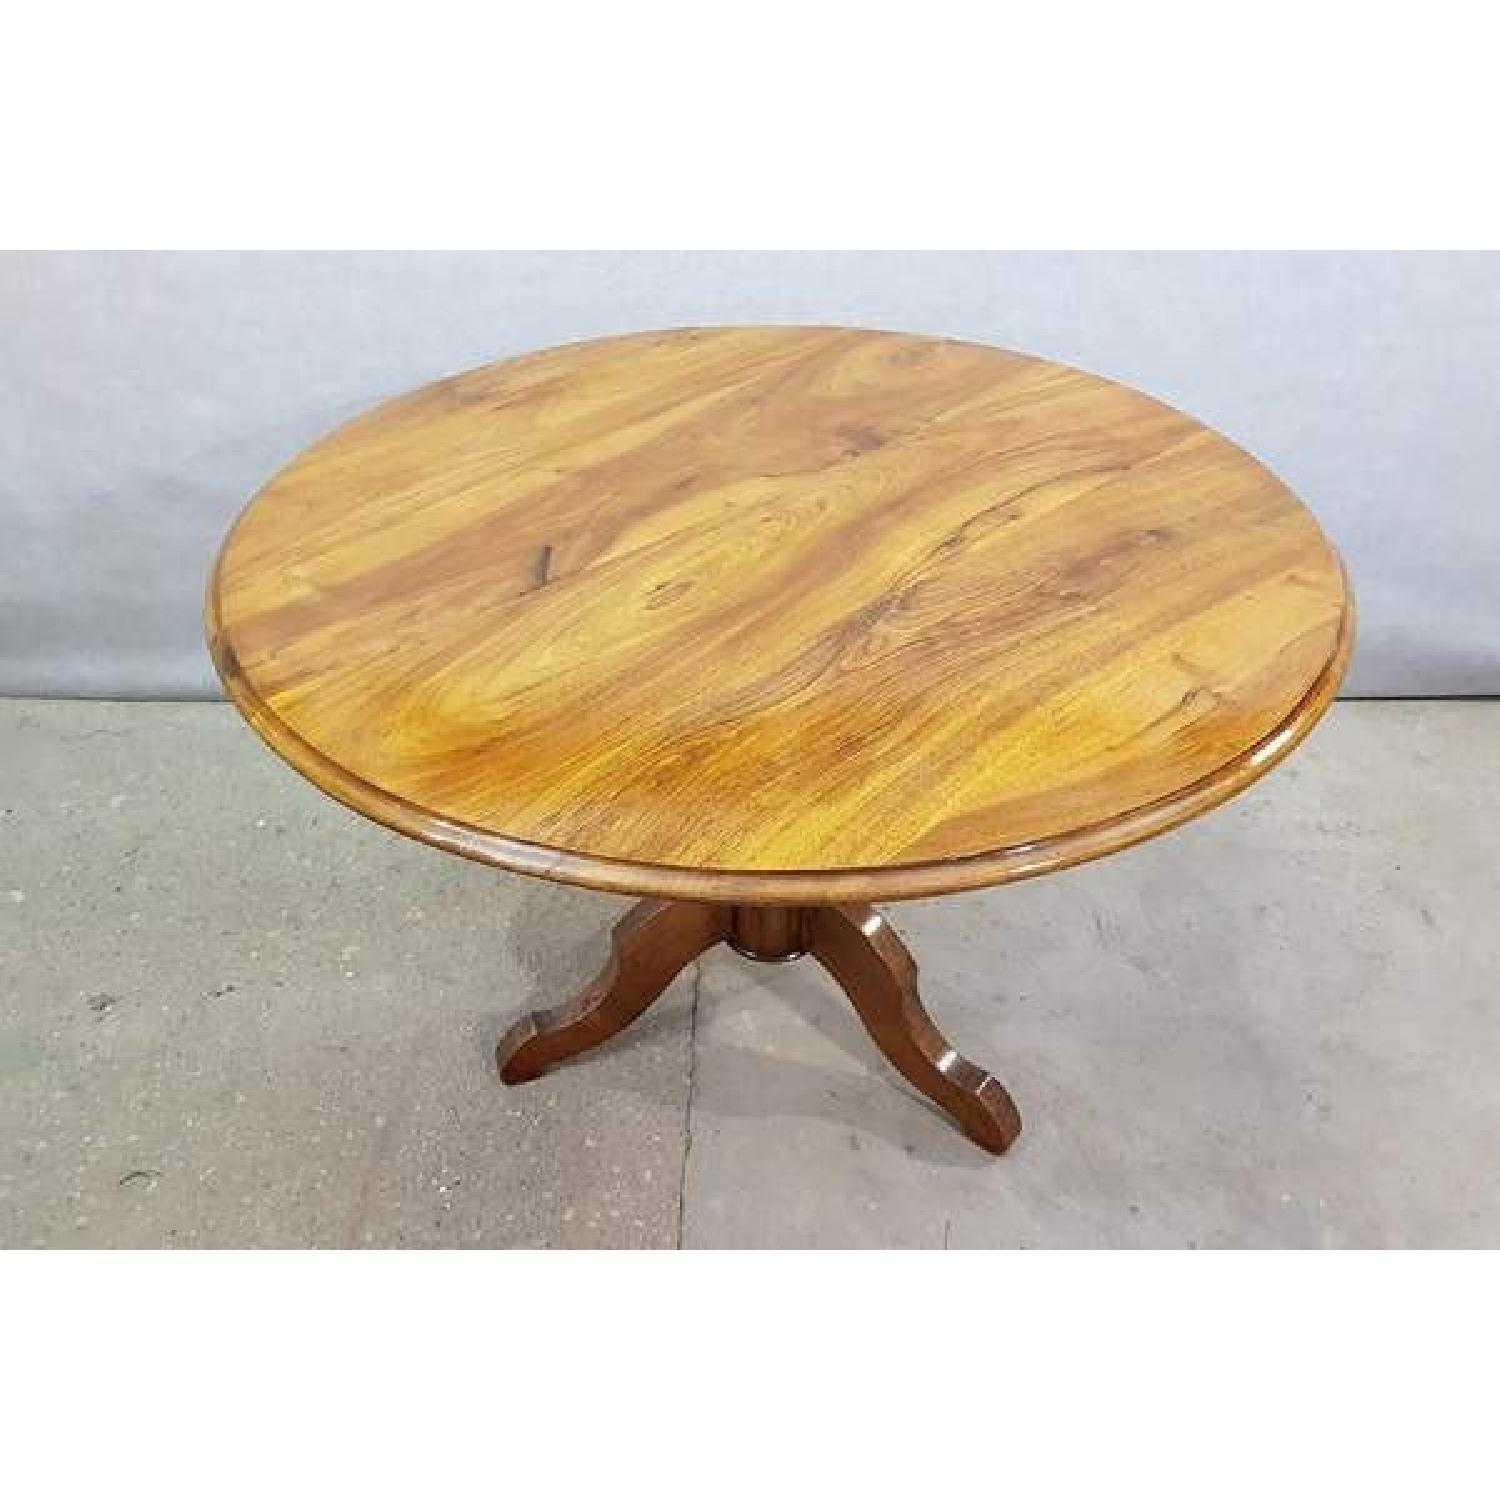 Antique French Walnut Round Tilt Top Occasional Side Table-5